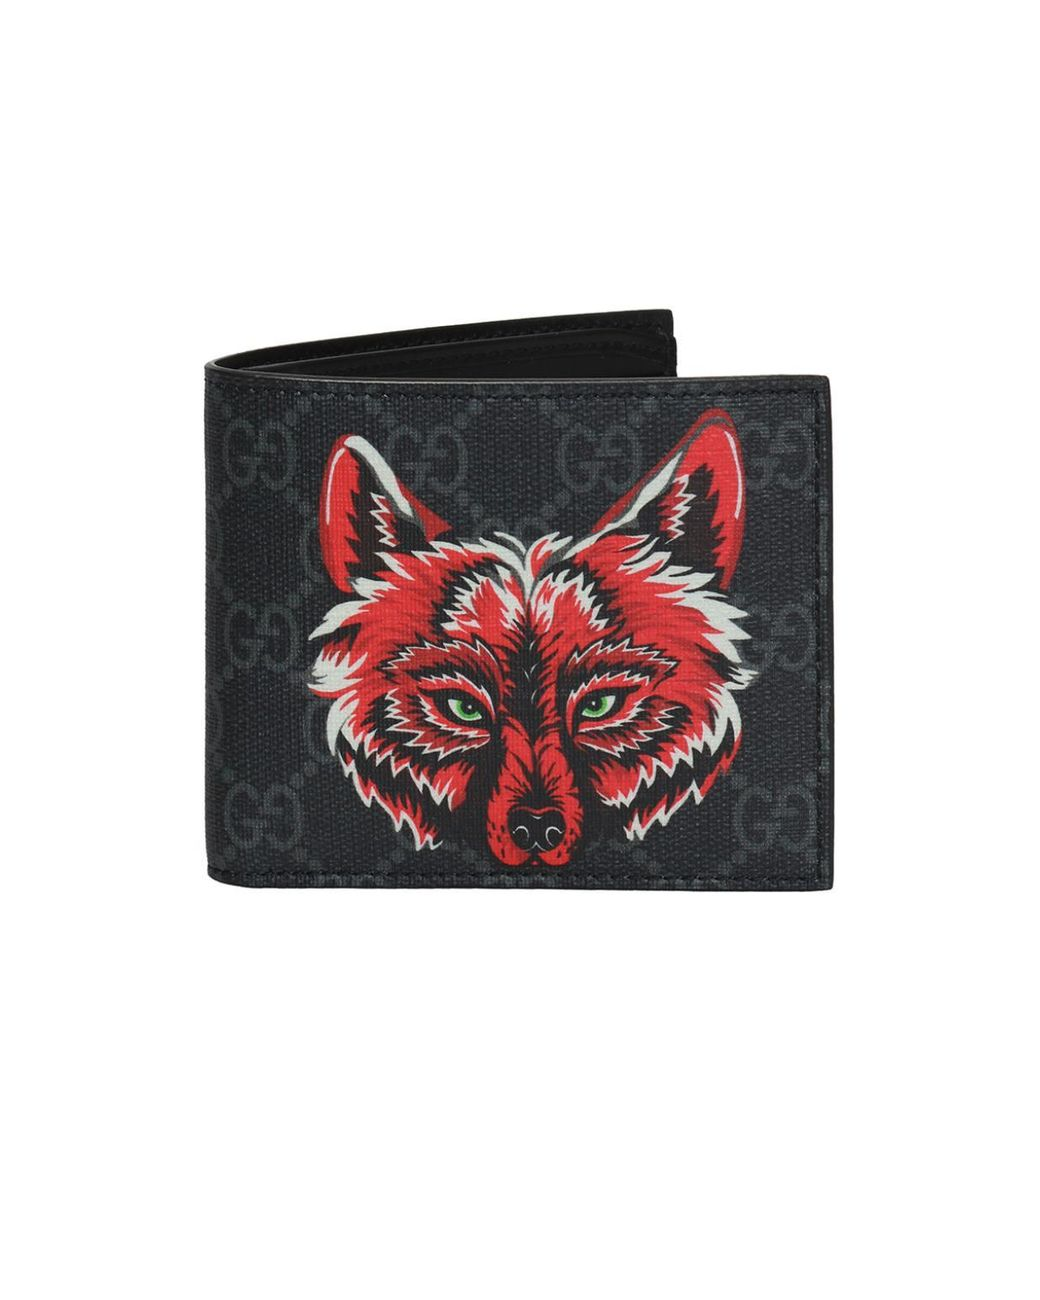 4858d8dc912 Gucci Wolf Head Motif Wallet in Black for Men - Lyst